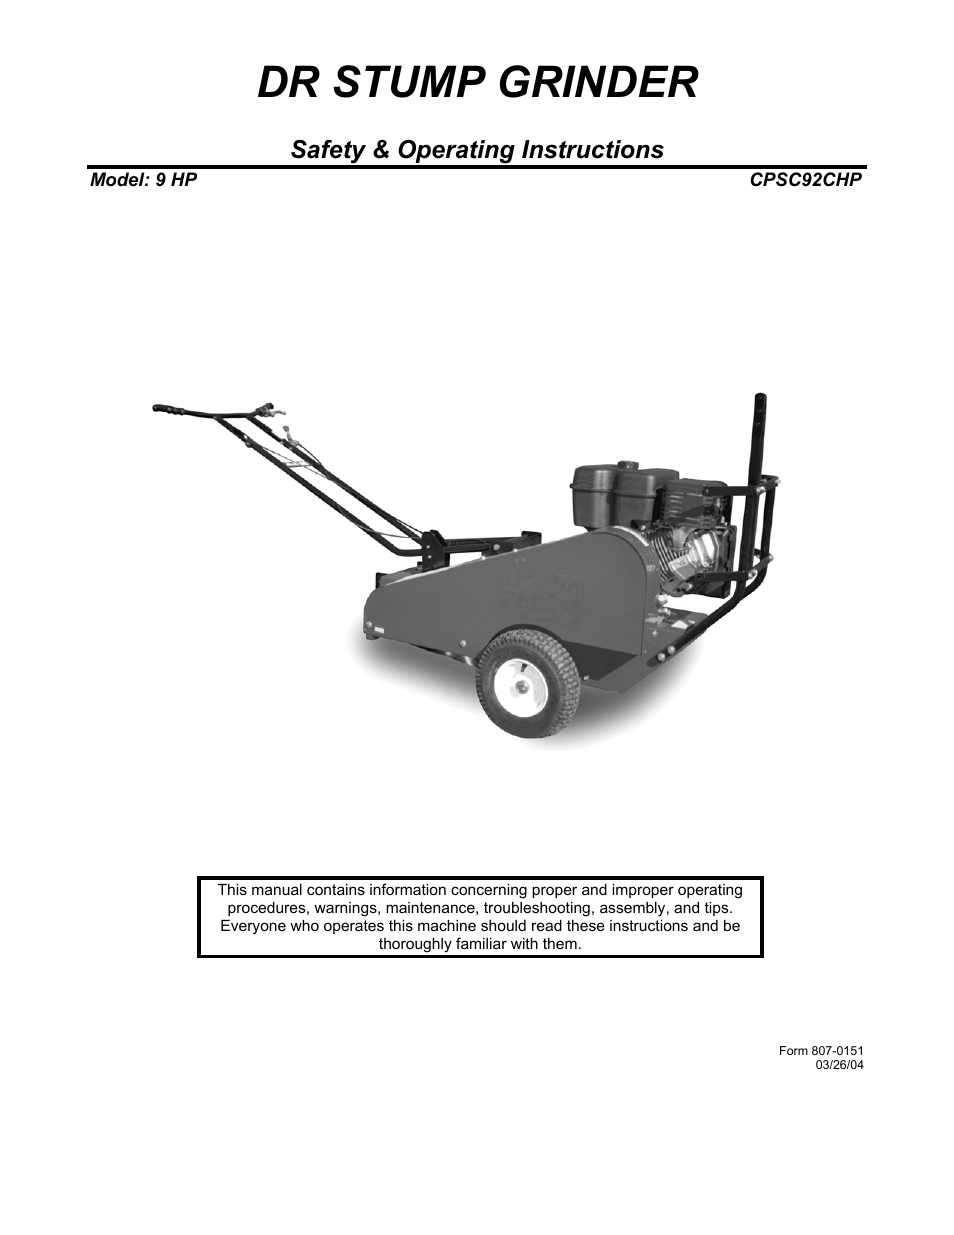 Dr Power 9 Hp March 2004 March 2010 User Manual 20 Pages